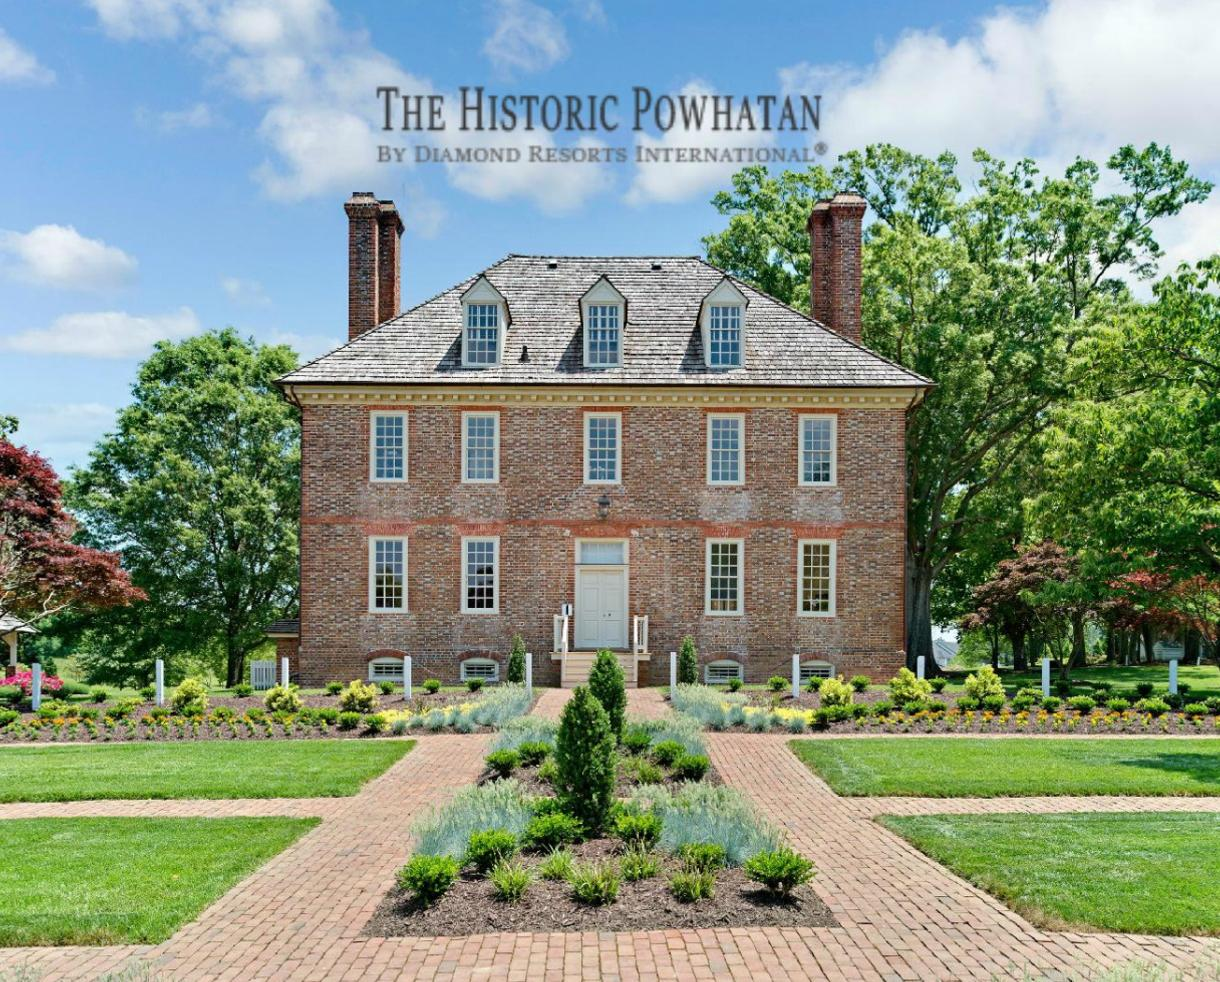 3-Night Getaway in One bedroom condo at The Historic Powhatan Resort